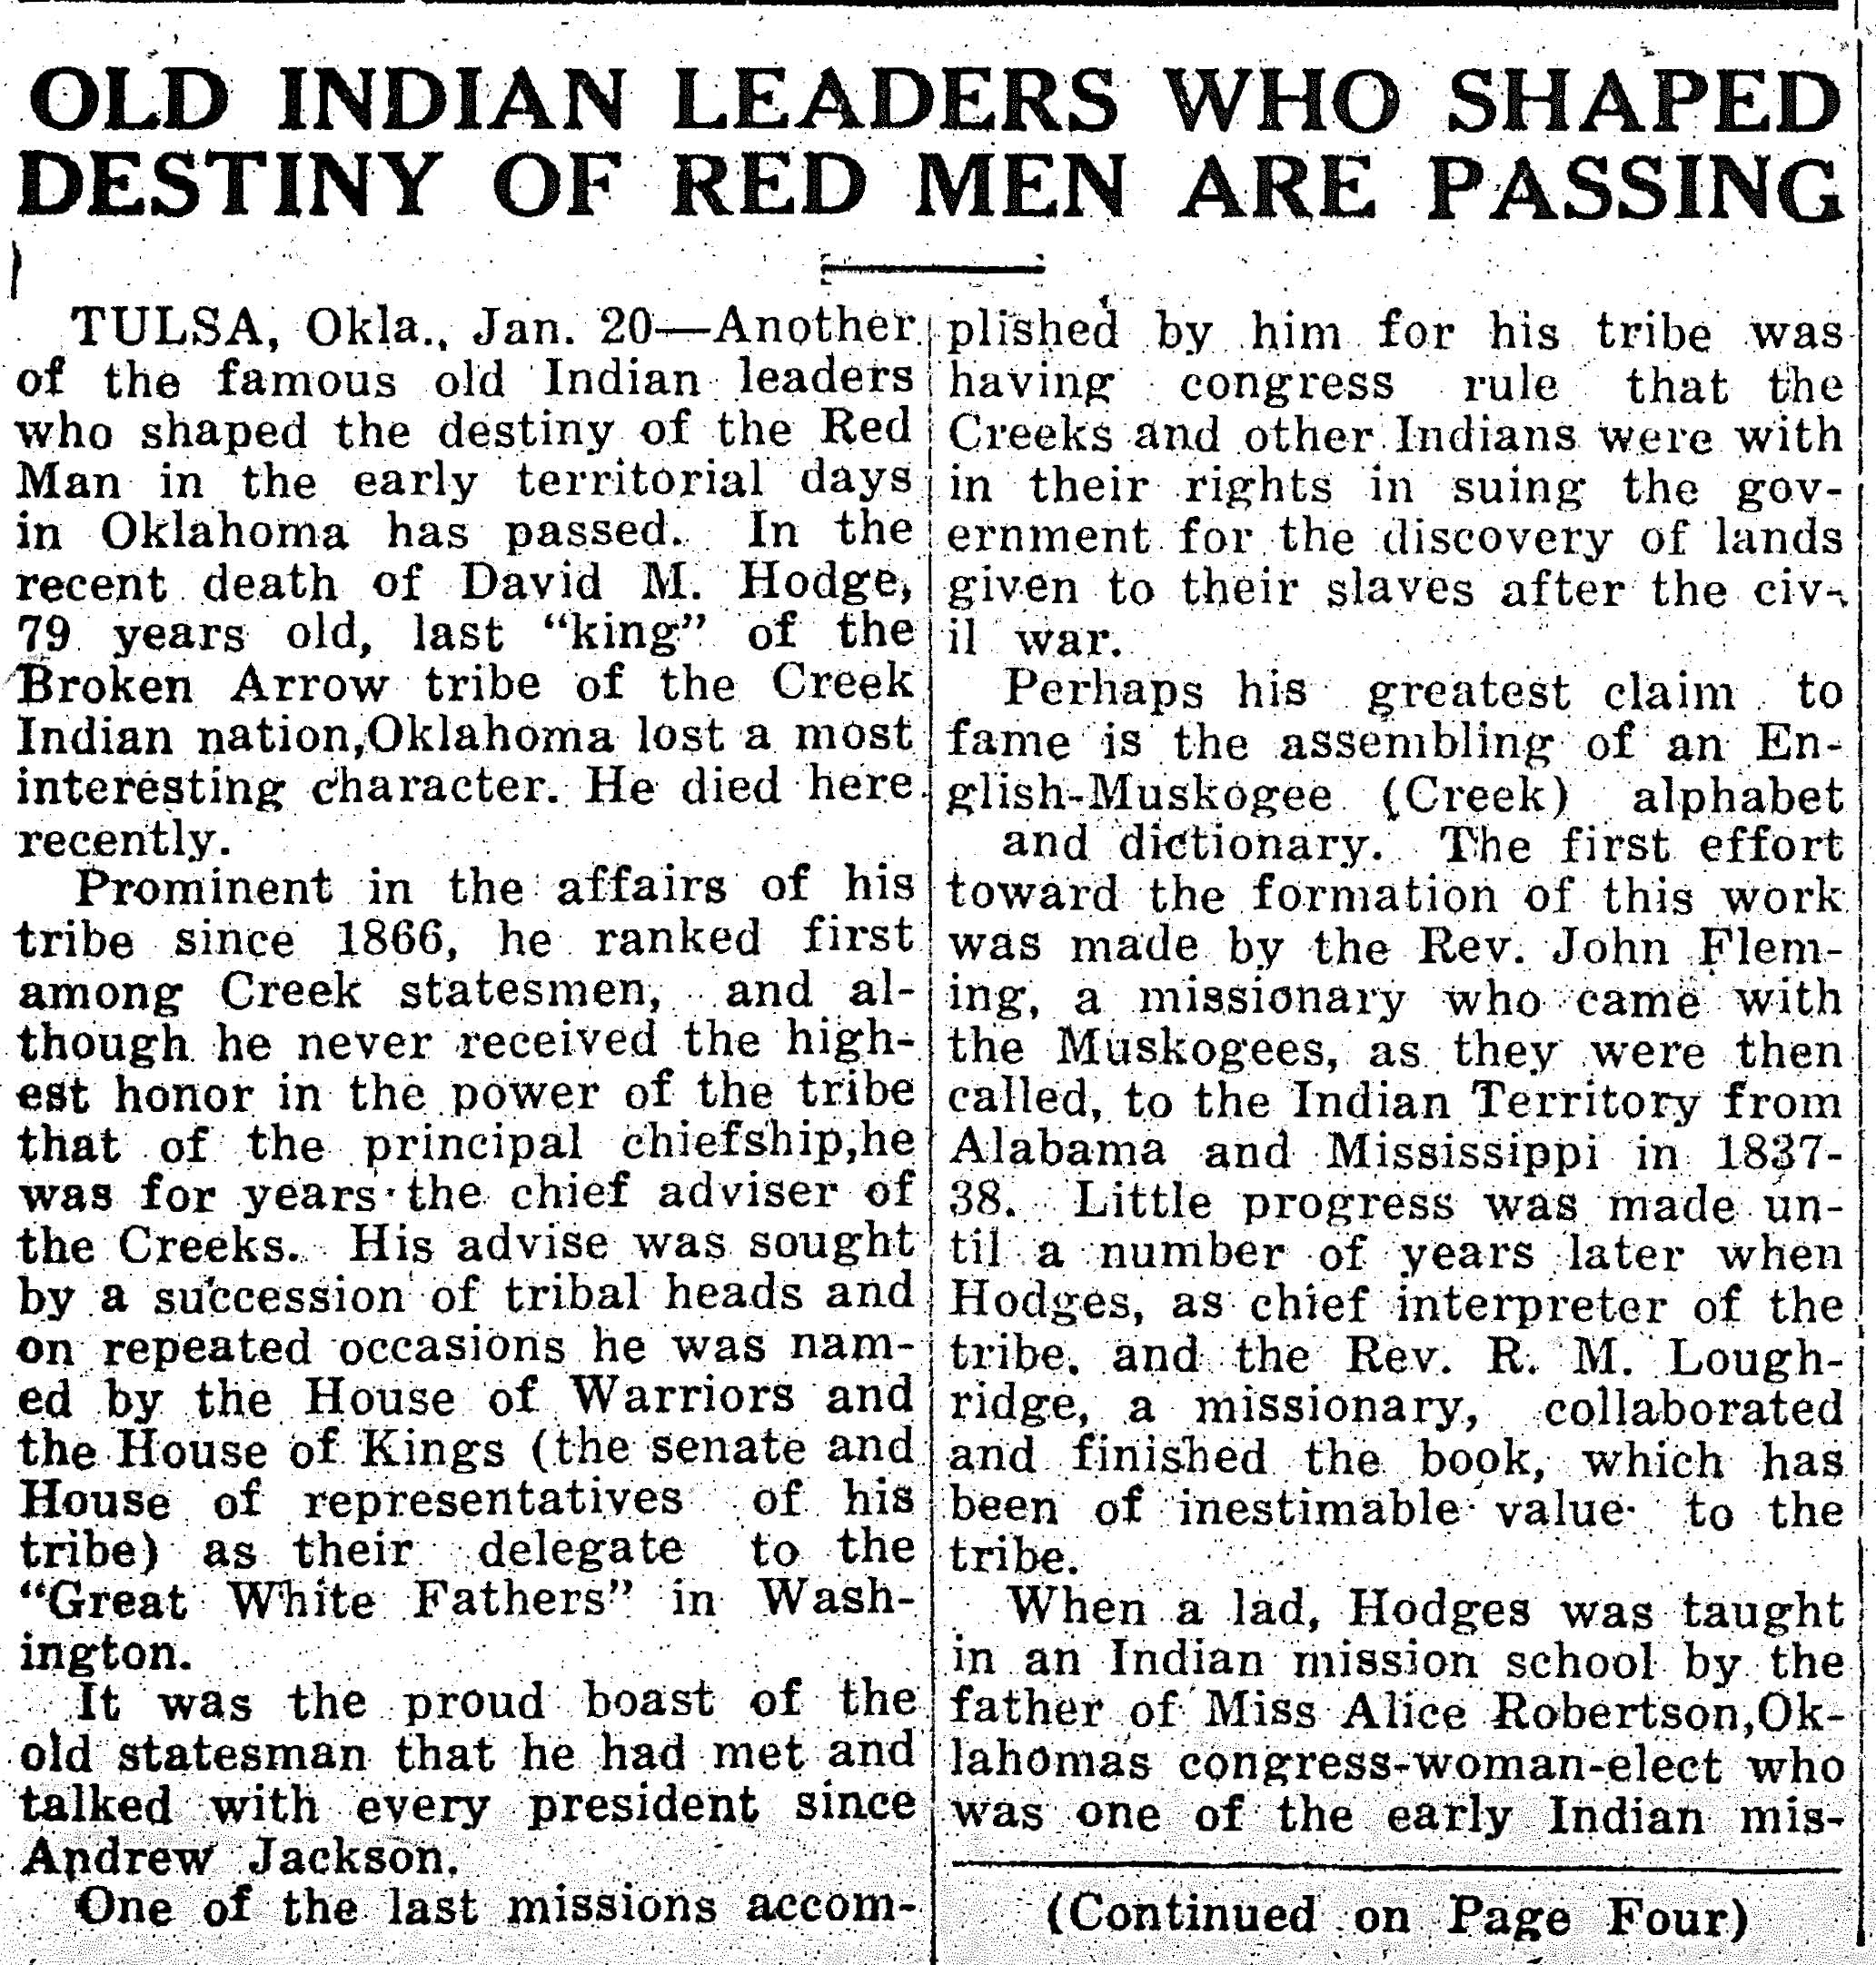 Old Indian Leaders who Shaped Destiny of Red Men are Passing